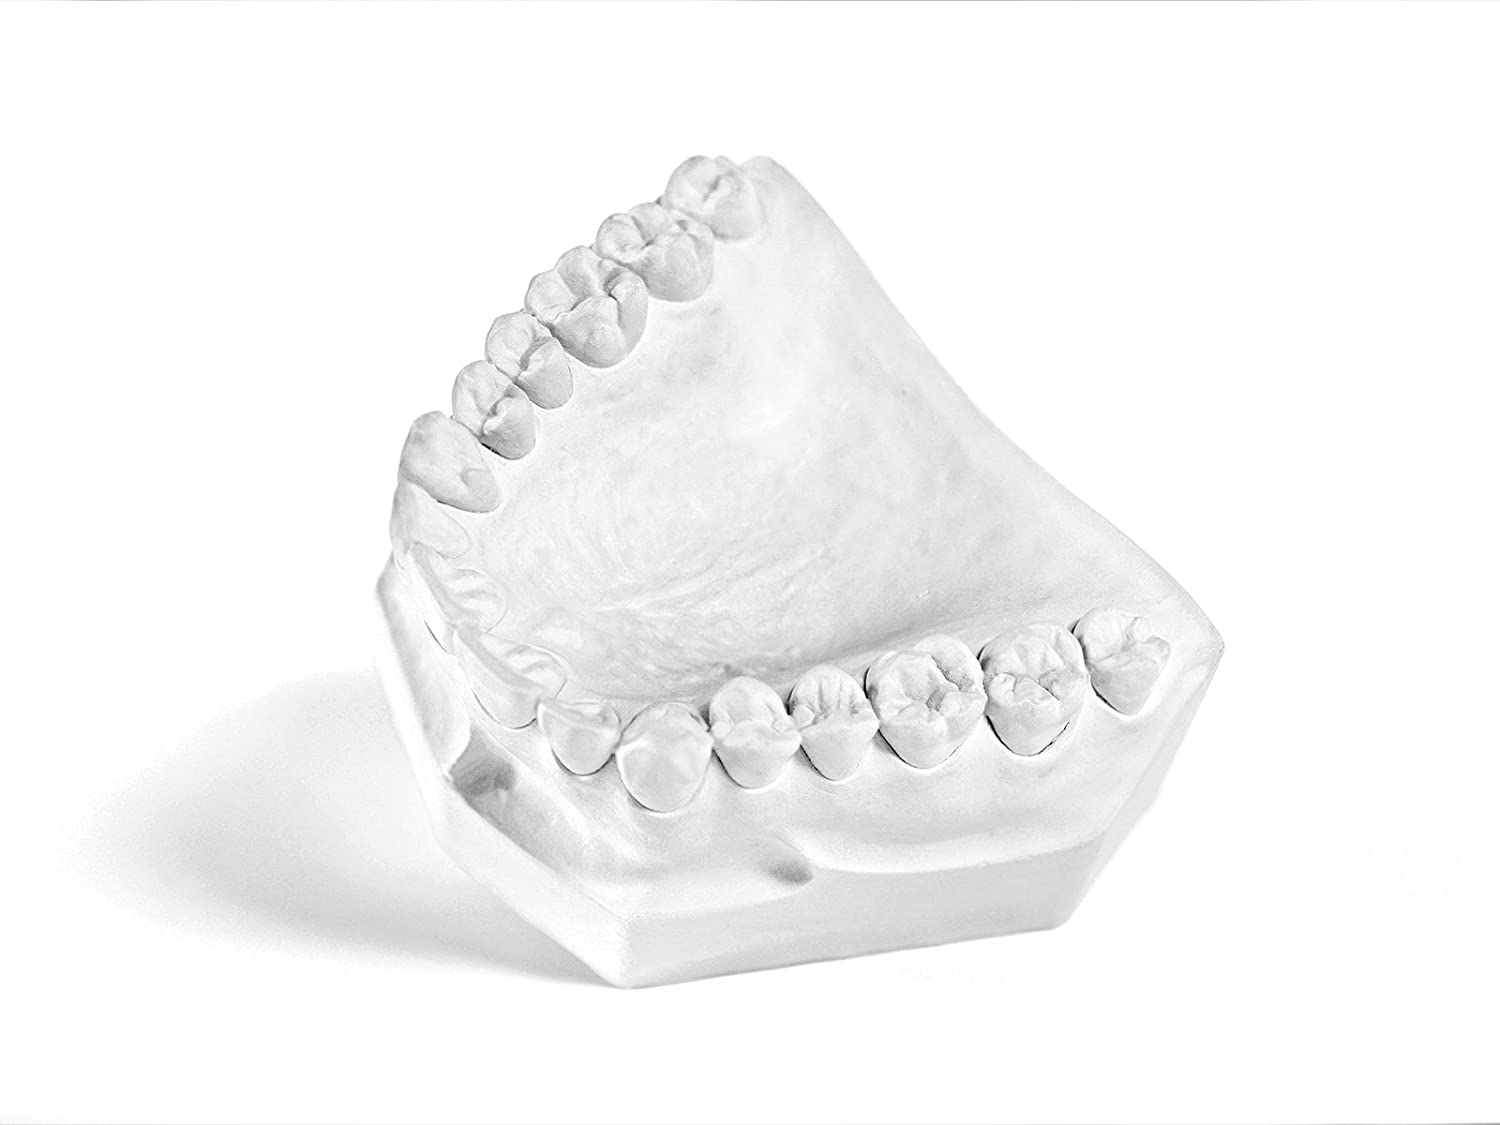 Amazon.com: Garreco 1500025 - Yeso dental secado rá ...